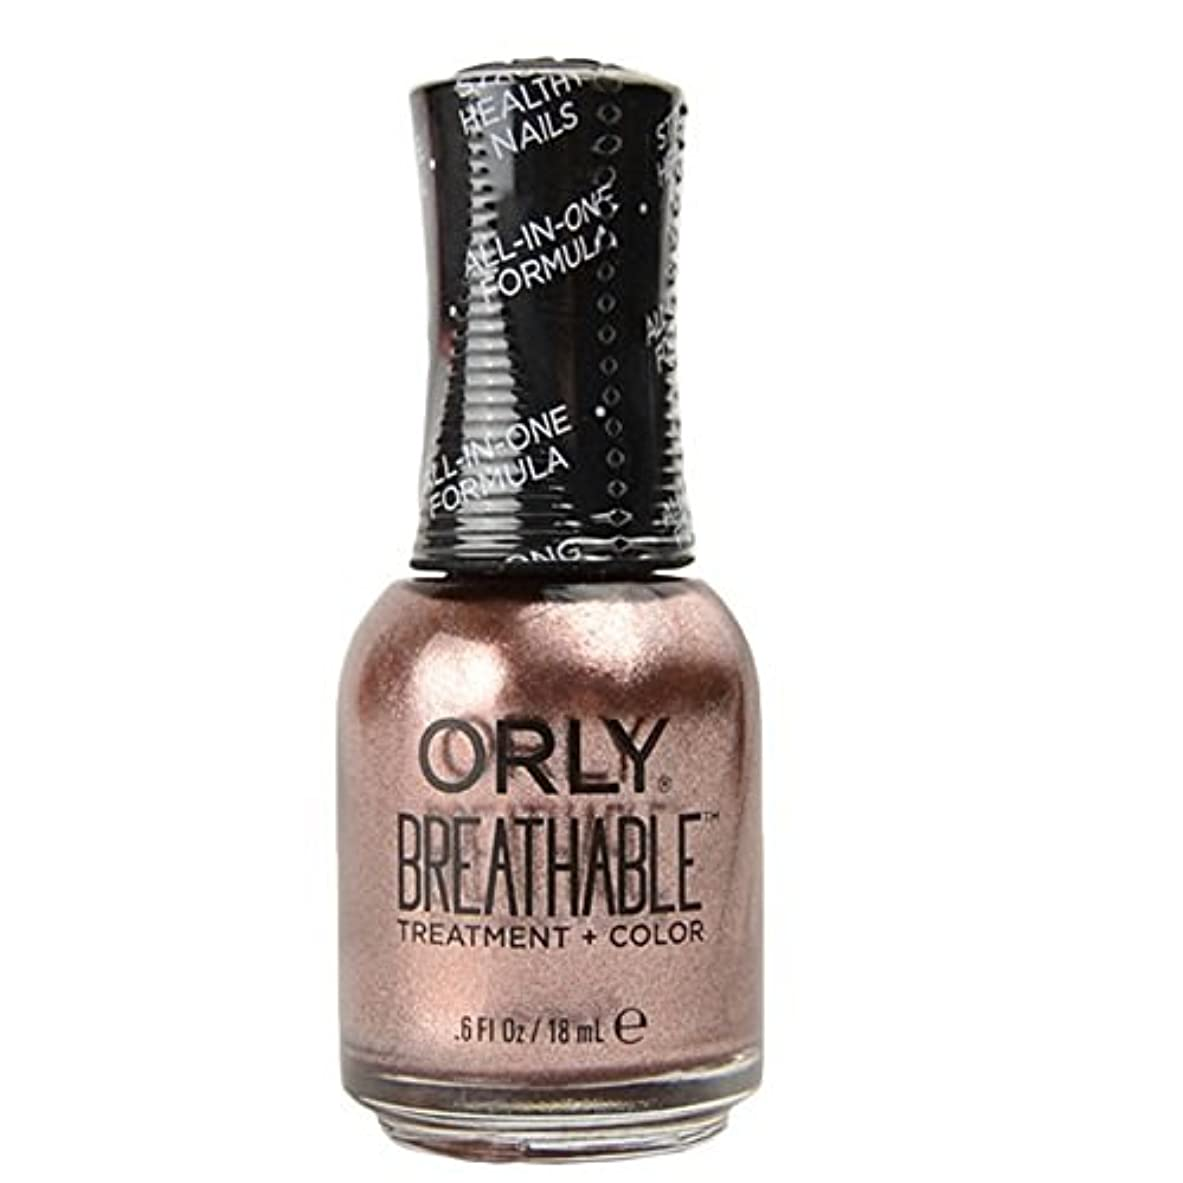 蚊顎授業料Orly Breathable Treatment + Color Nail Lacquer - Fairy Godmother - 0.6oz / 18ml